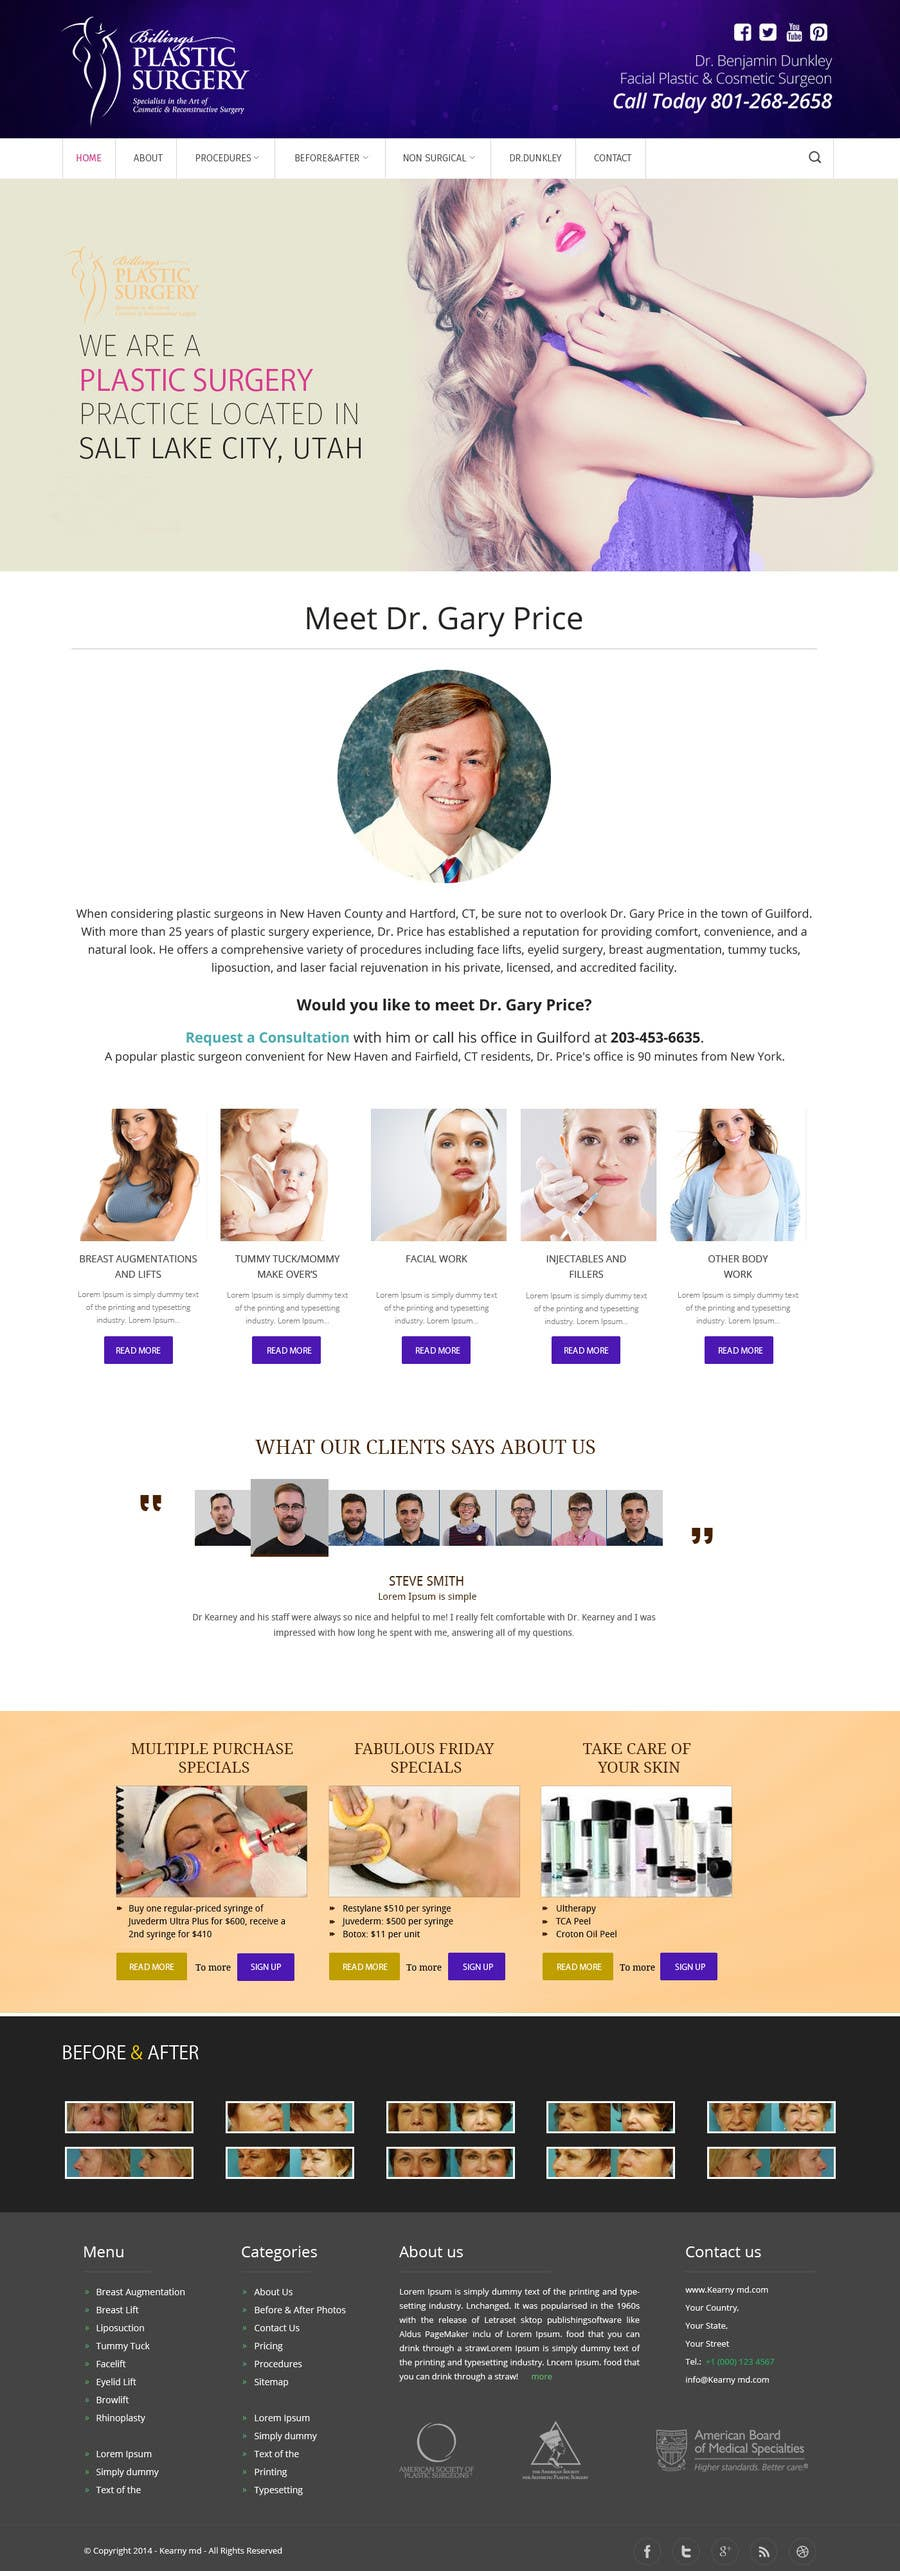 Contest Entry #                                        26                                      for                                         Design a Website Mockup for aesthetic surgery